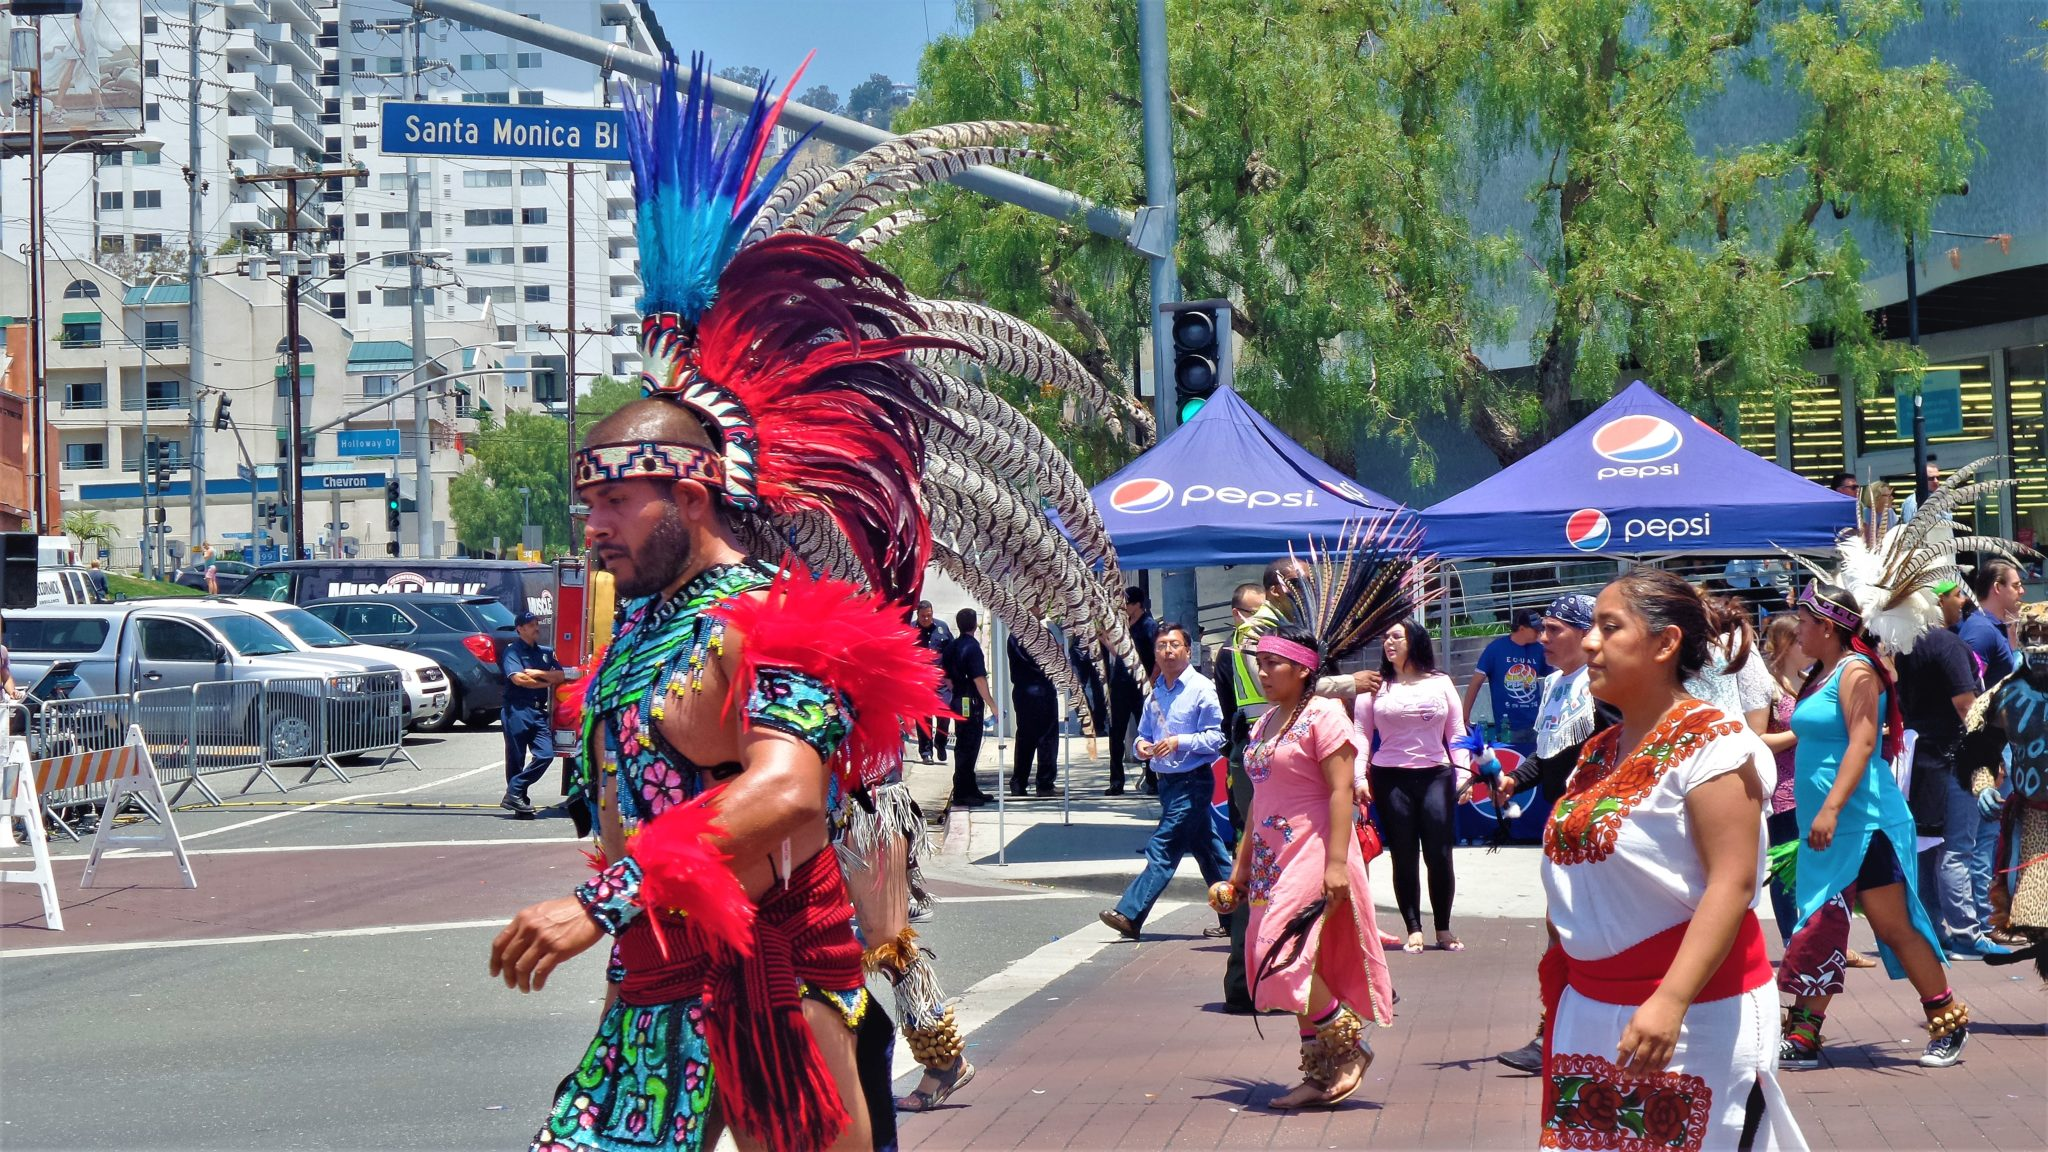 Pow wow in LA pride parade, los angeles, california